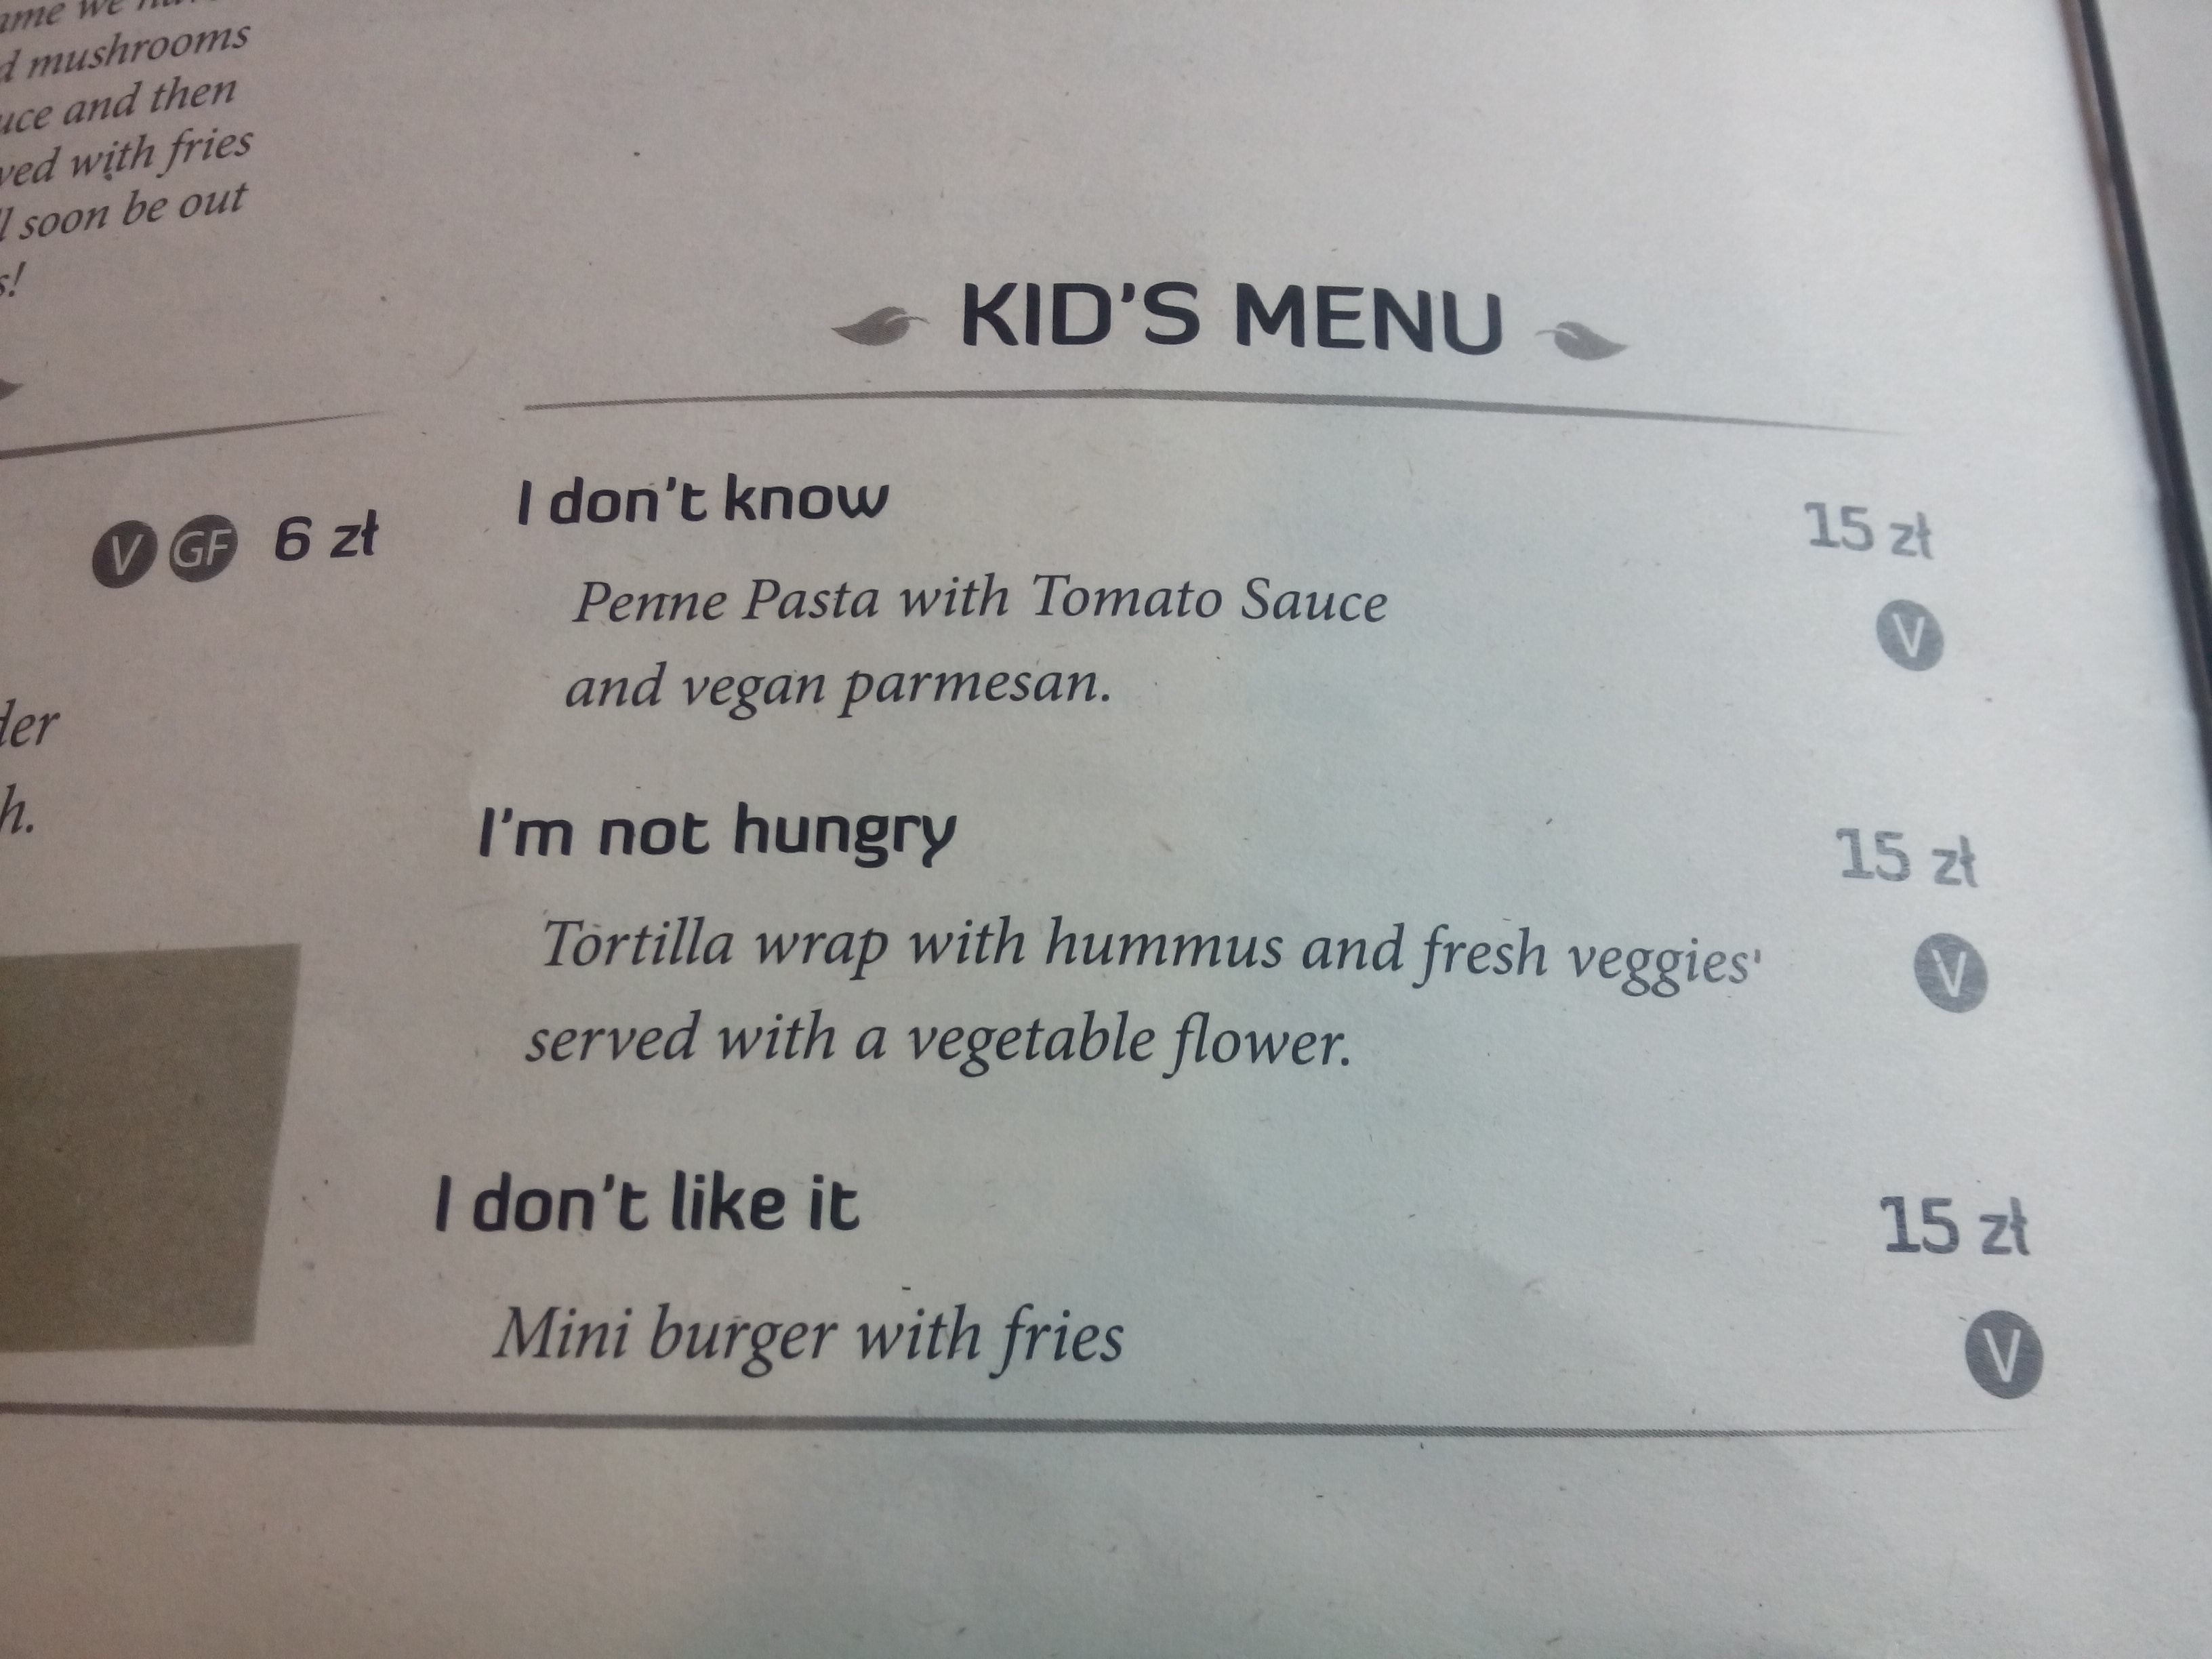 The kid's menu: I don't know (penne with tomato); I'm not hungry (hummus and veggie tortilla); I don't like it (mini burger with fries)